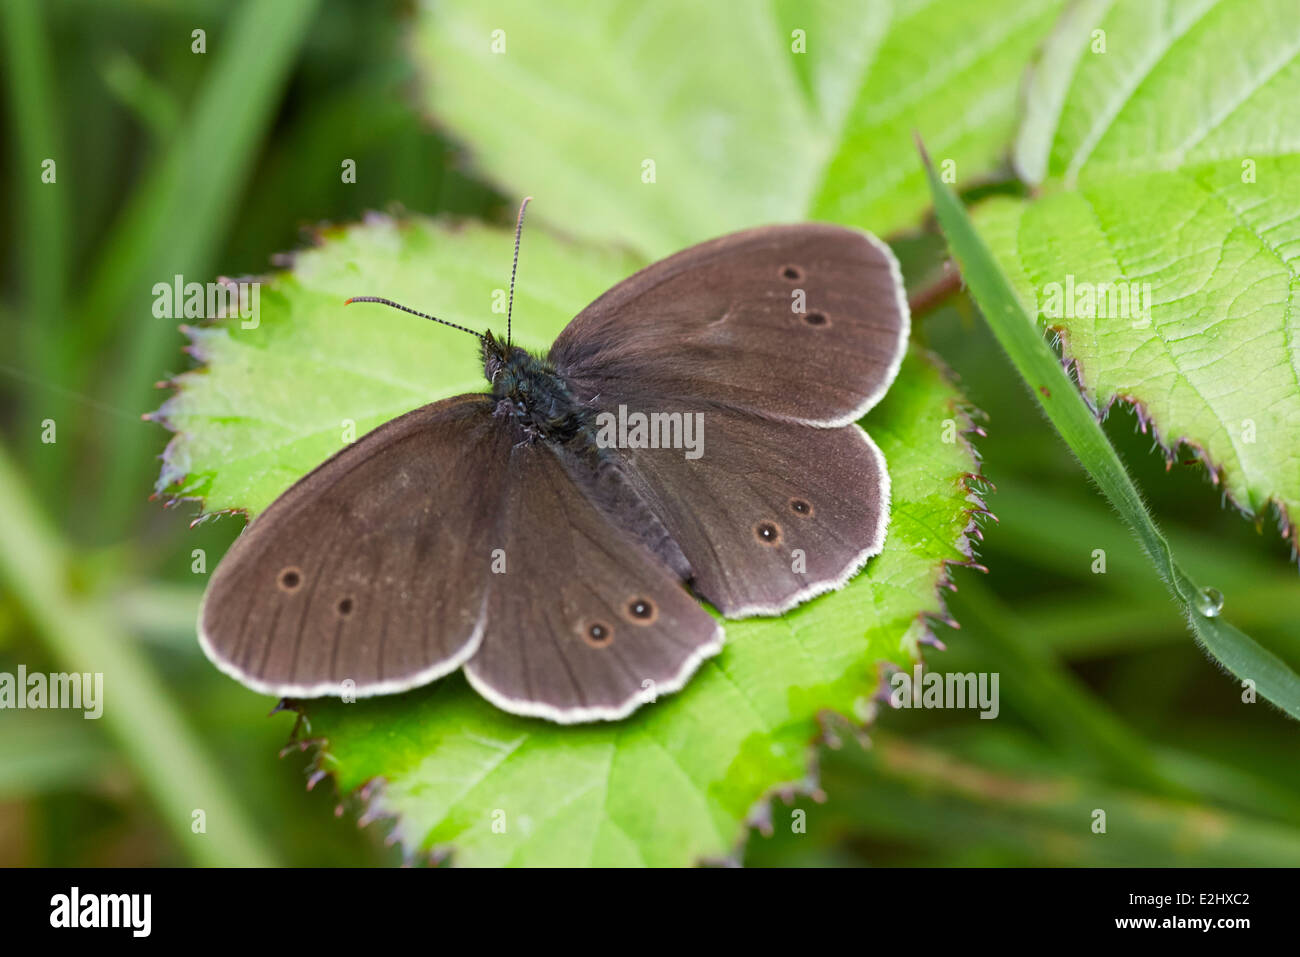 Ringlet butterfly. Bookham Common, Surrey, England. - Stock Image